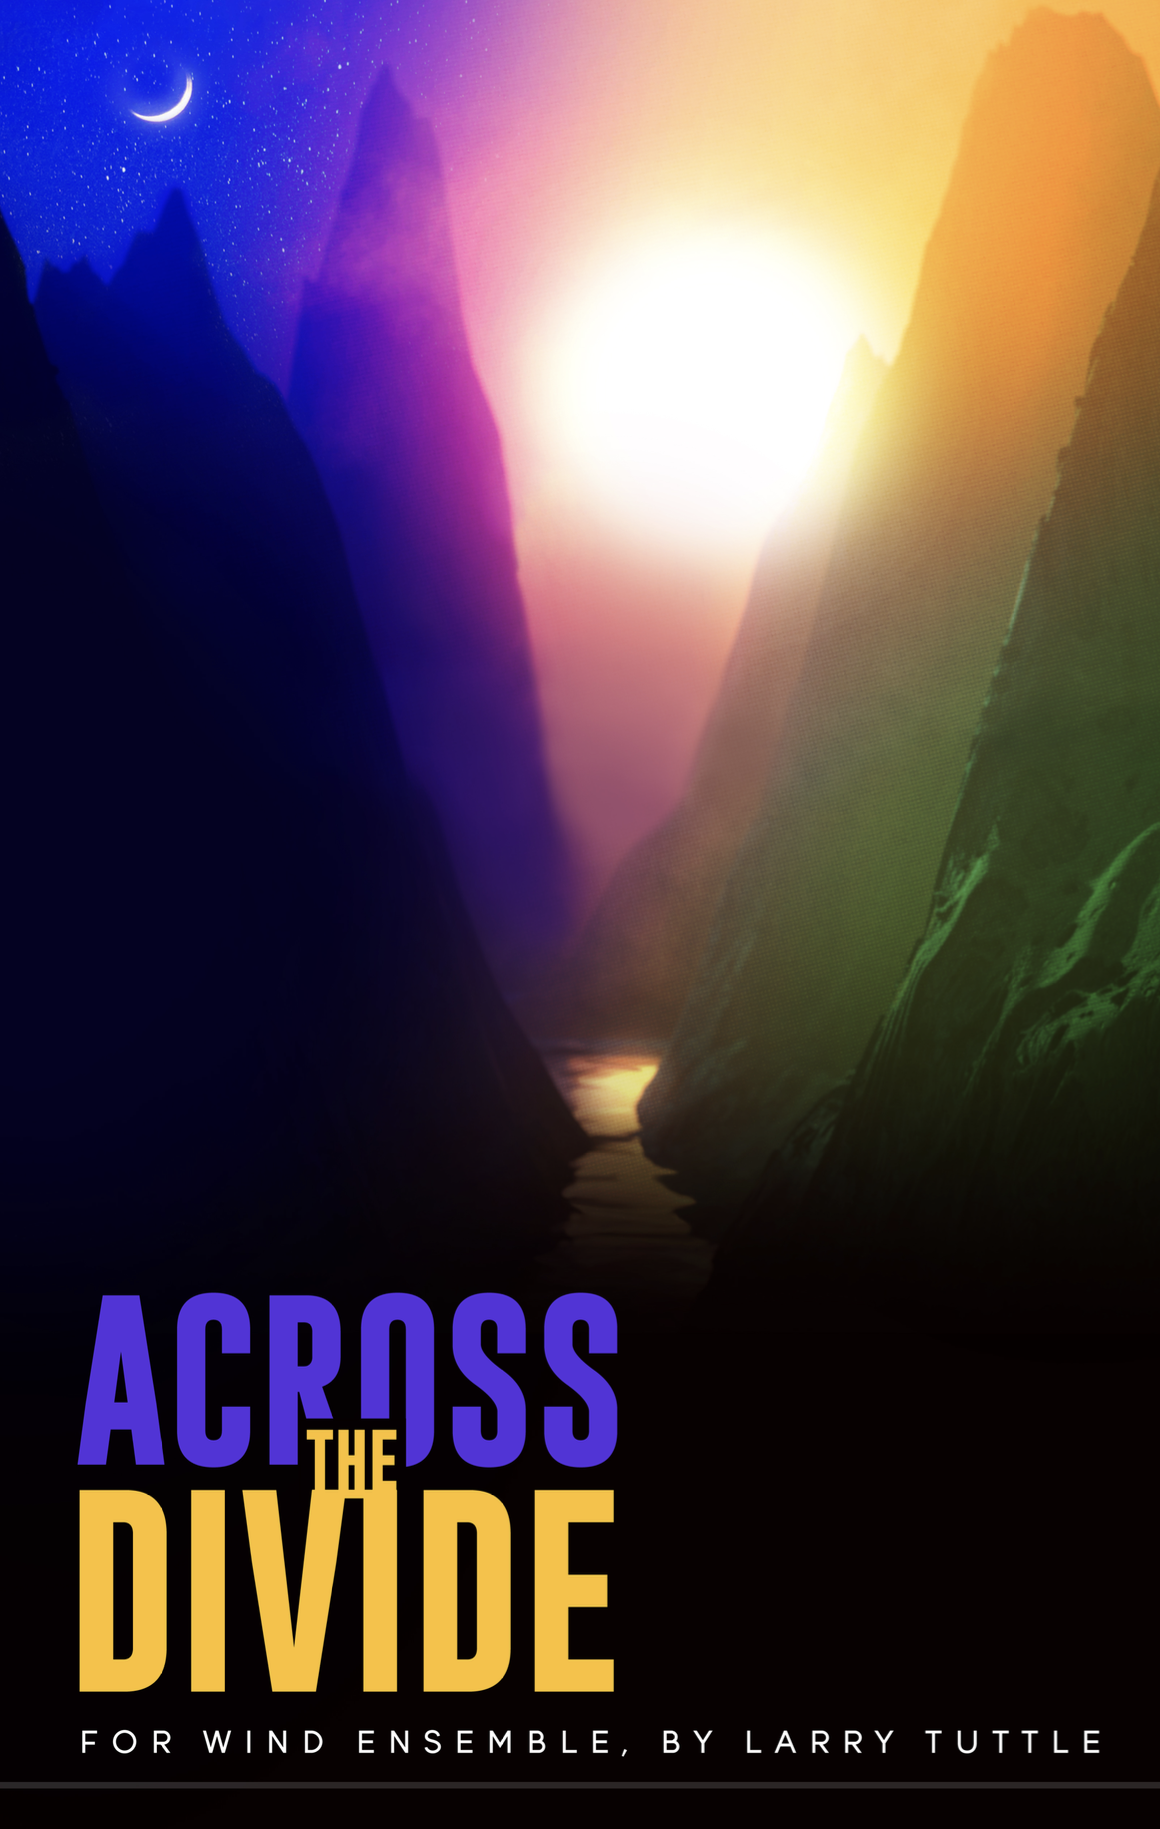 Across The Divide by Larry Tuttle